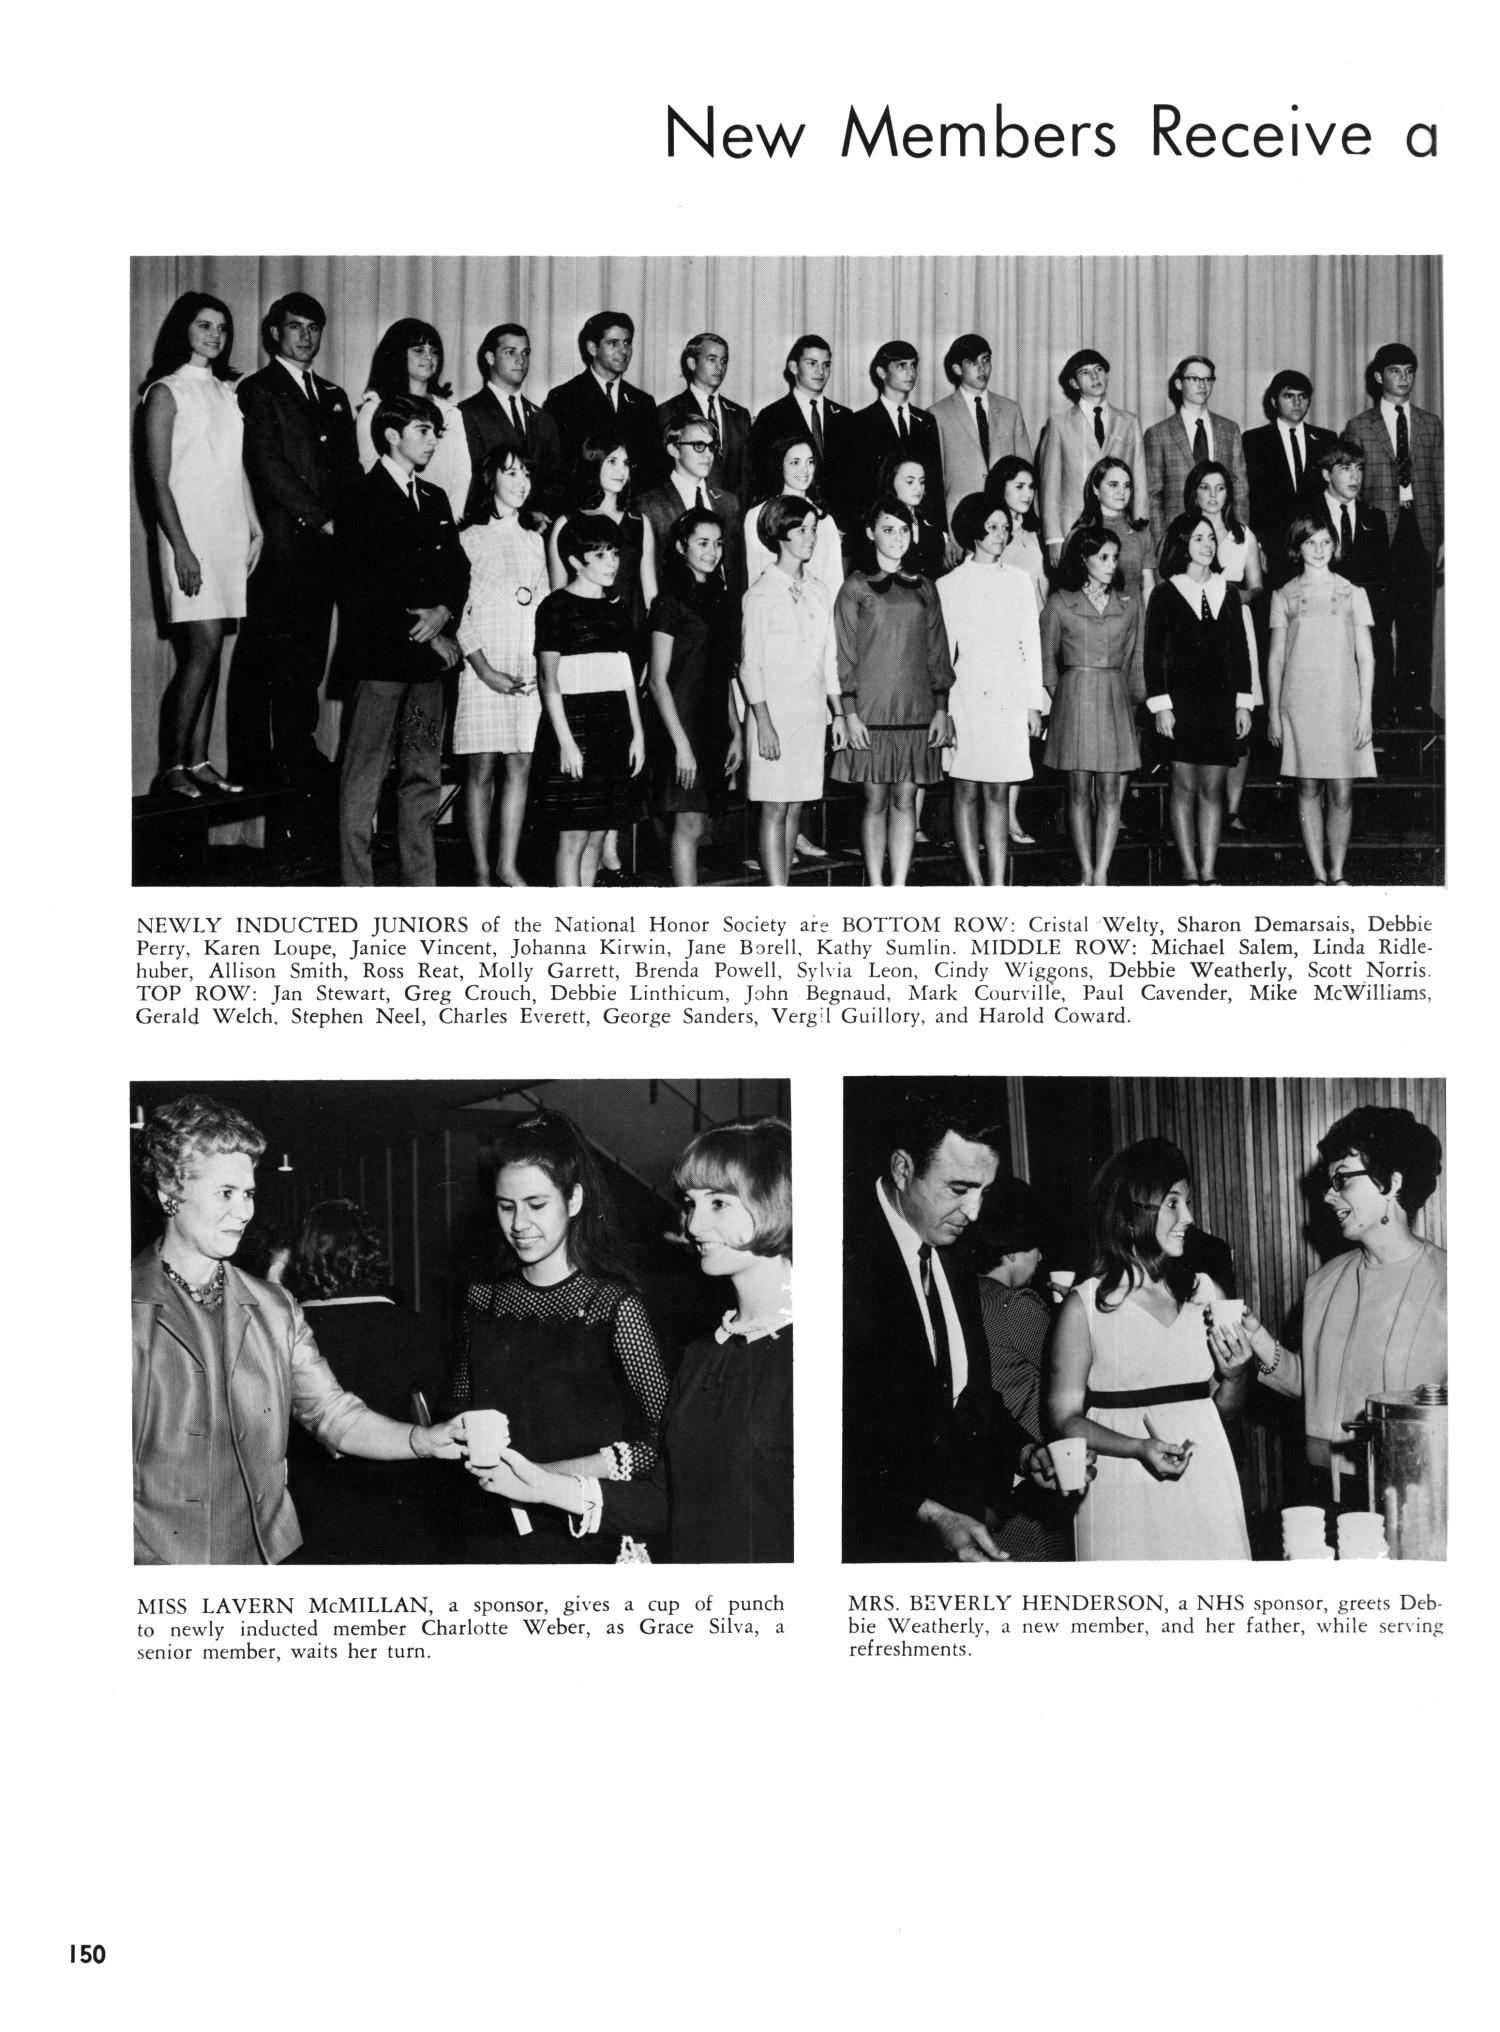 The aerie yearbook of university of north texas 1995 page 44 unt - The Yellow Jacket Yearbook Of Thomas Jefferson High School 1969 Page 150 Micaela Campos Screening Audition For The University Of North Texas